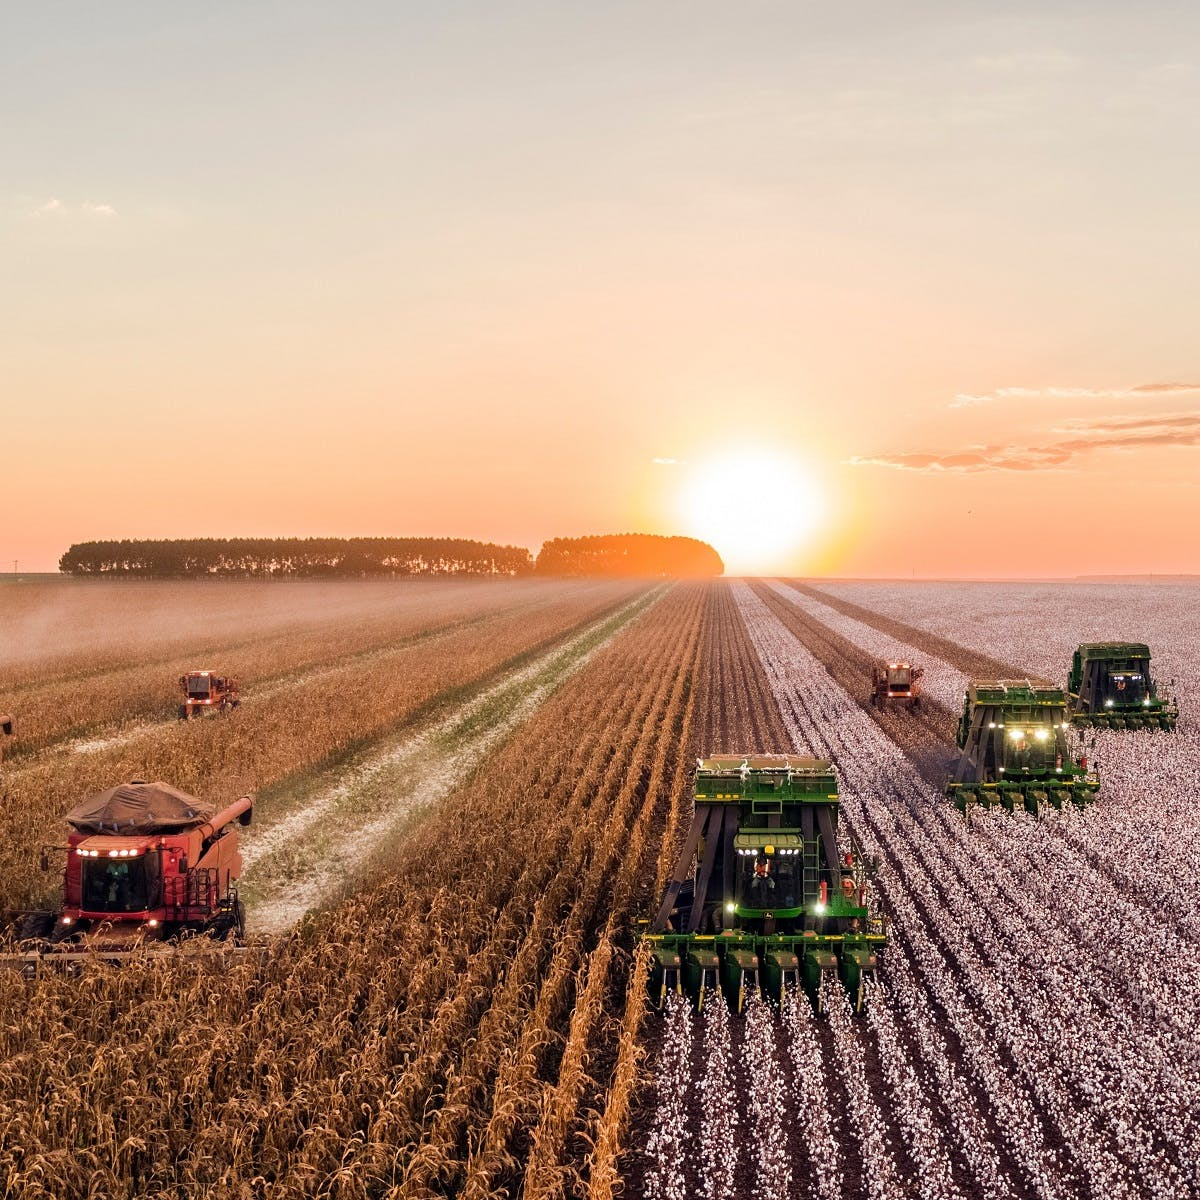 Humanly engineered fields of grain that cover huge areas of the landscape are being harvested. Rewilding seeks to restore some of these lands we have destroyed.